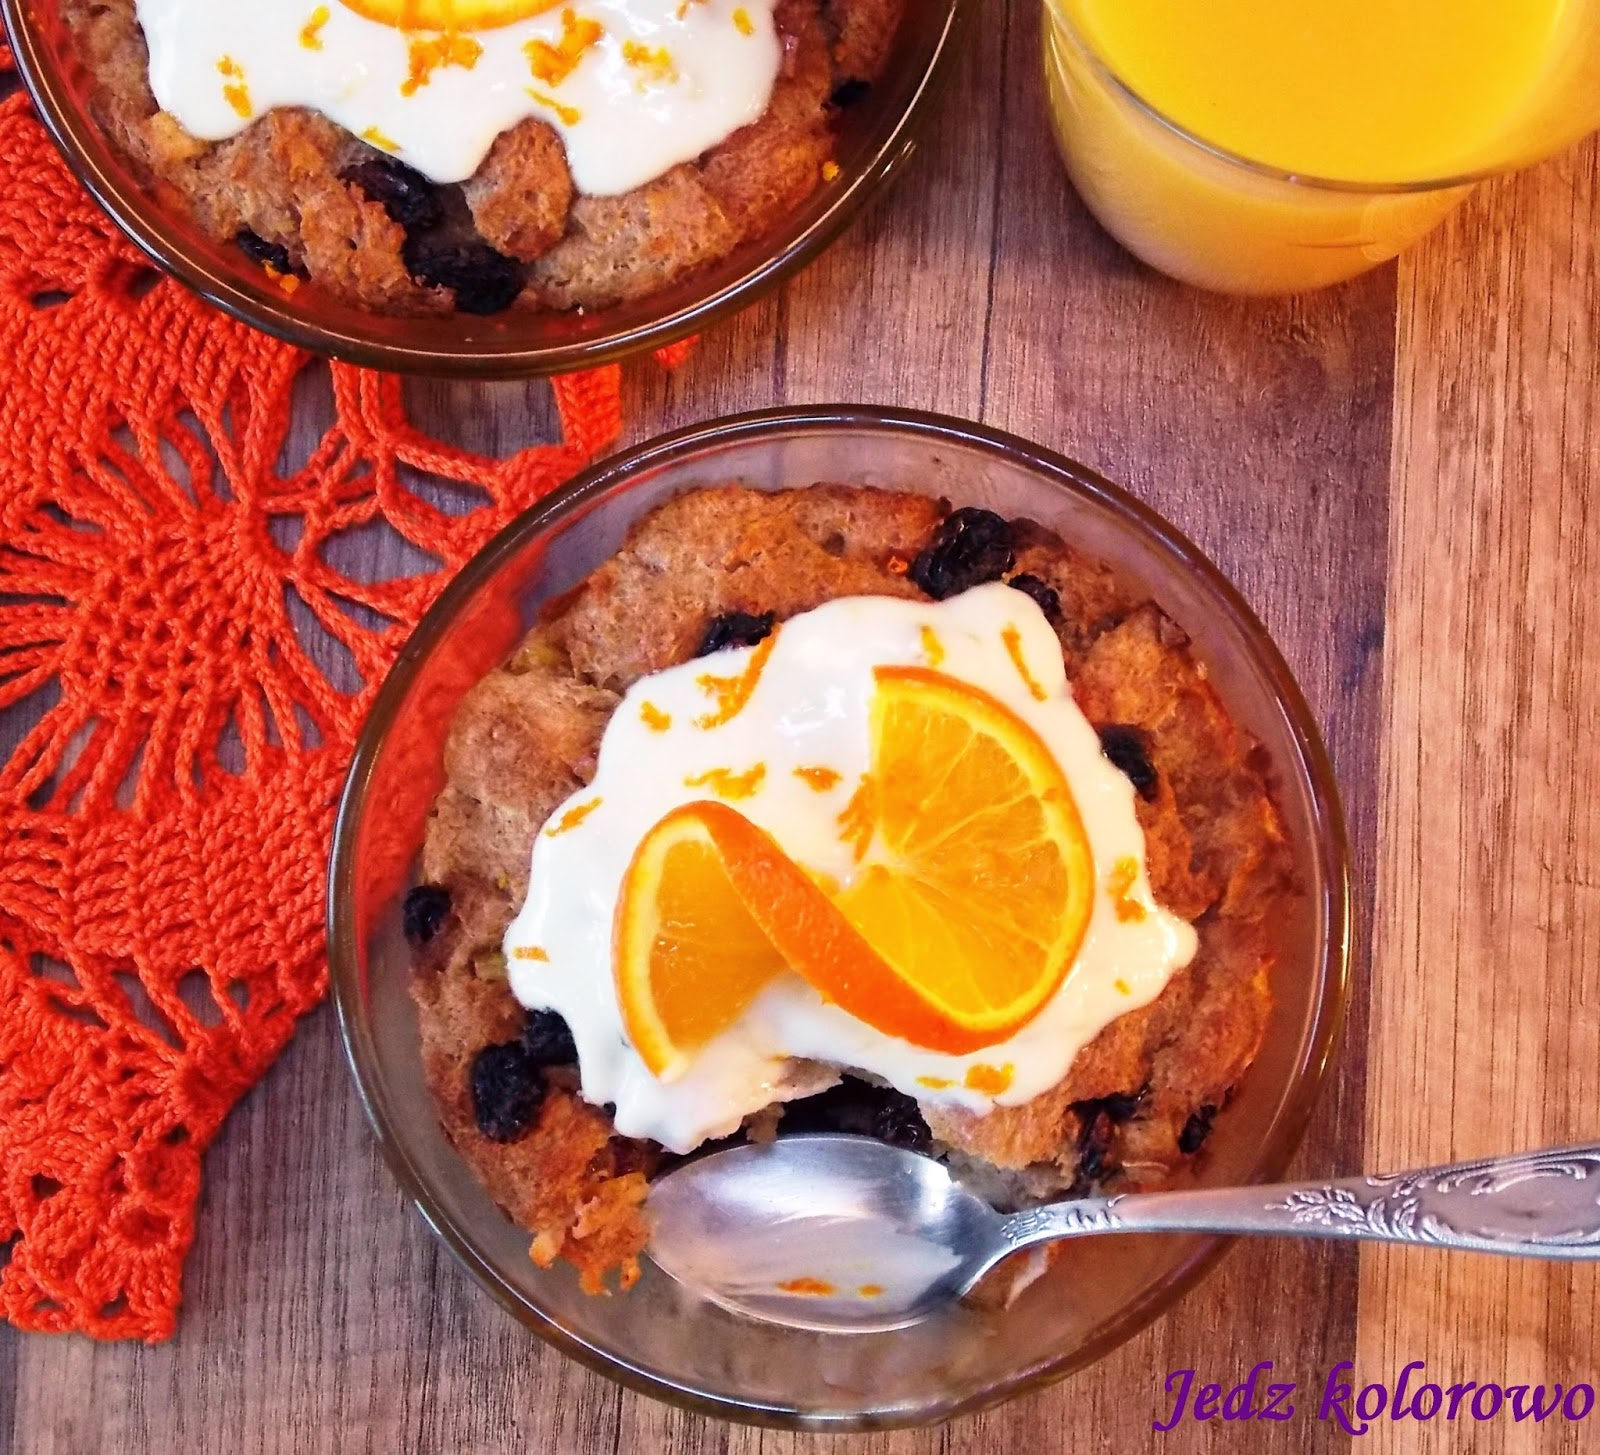 pudding chlebowy - bread pudding